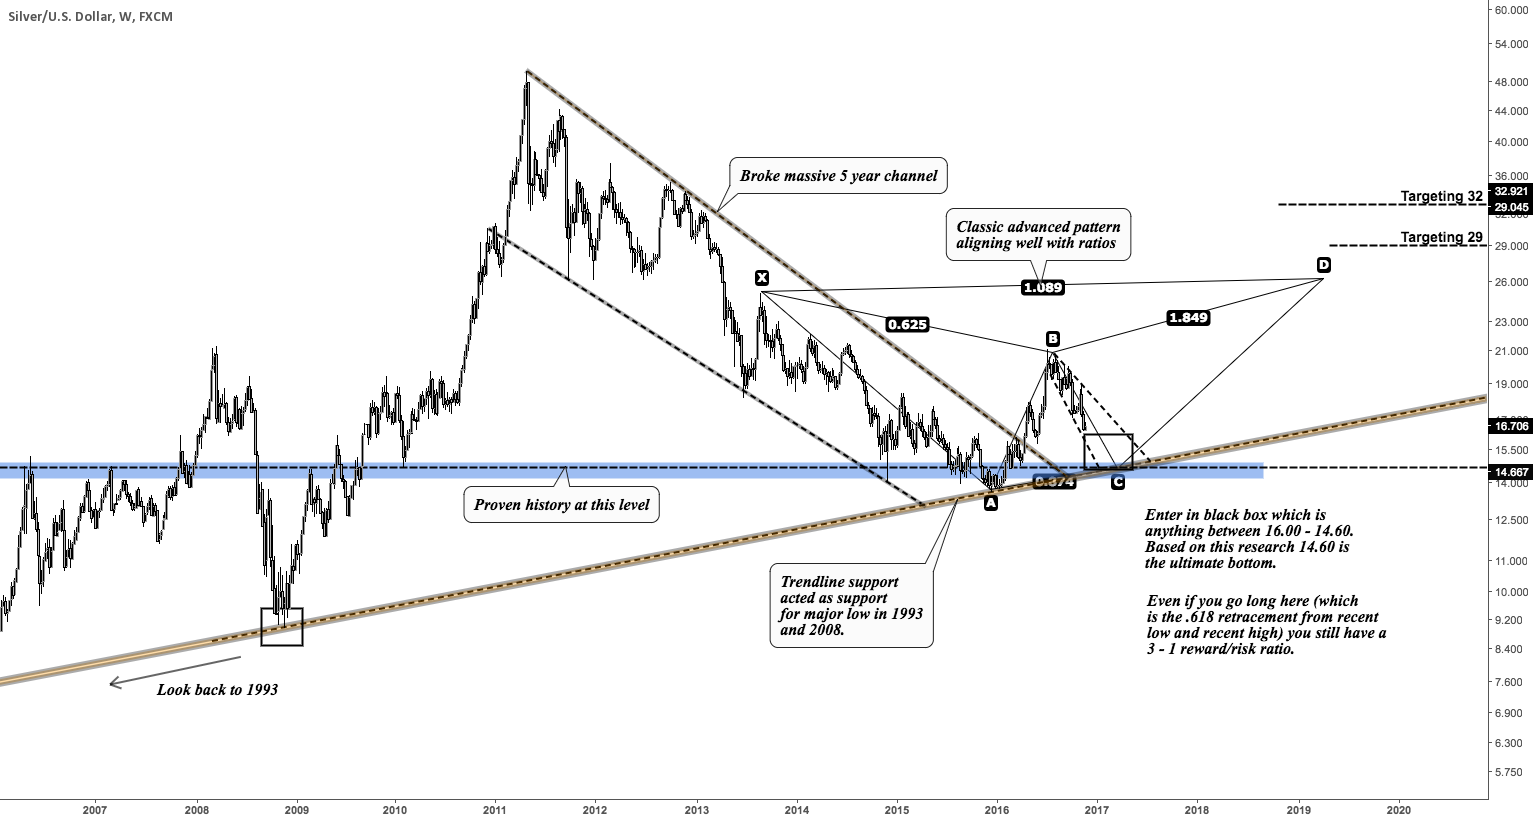 Massive opportunity in Silver - calling the bottom